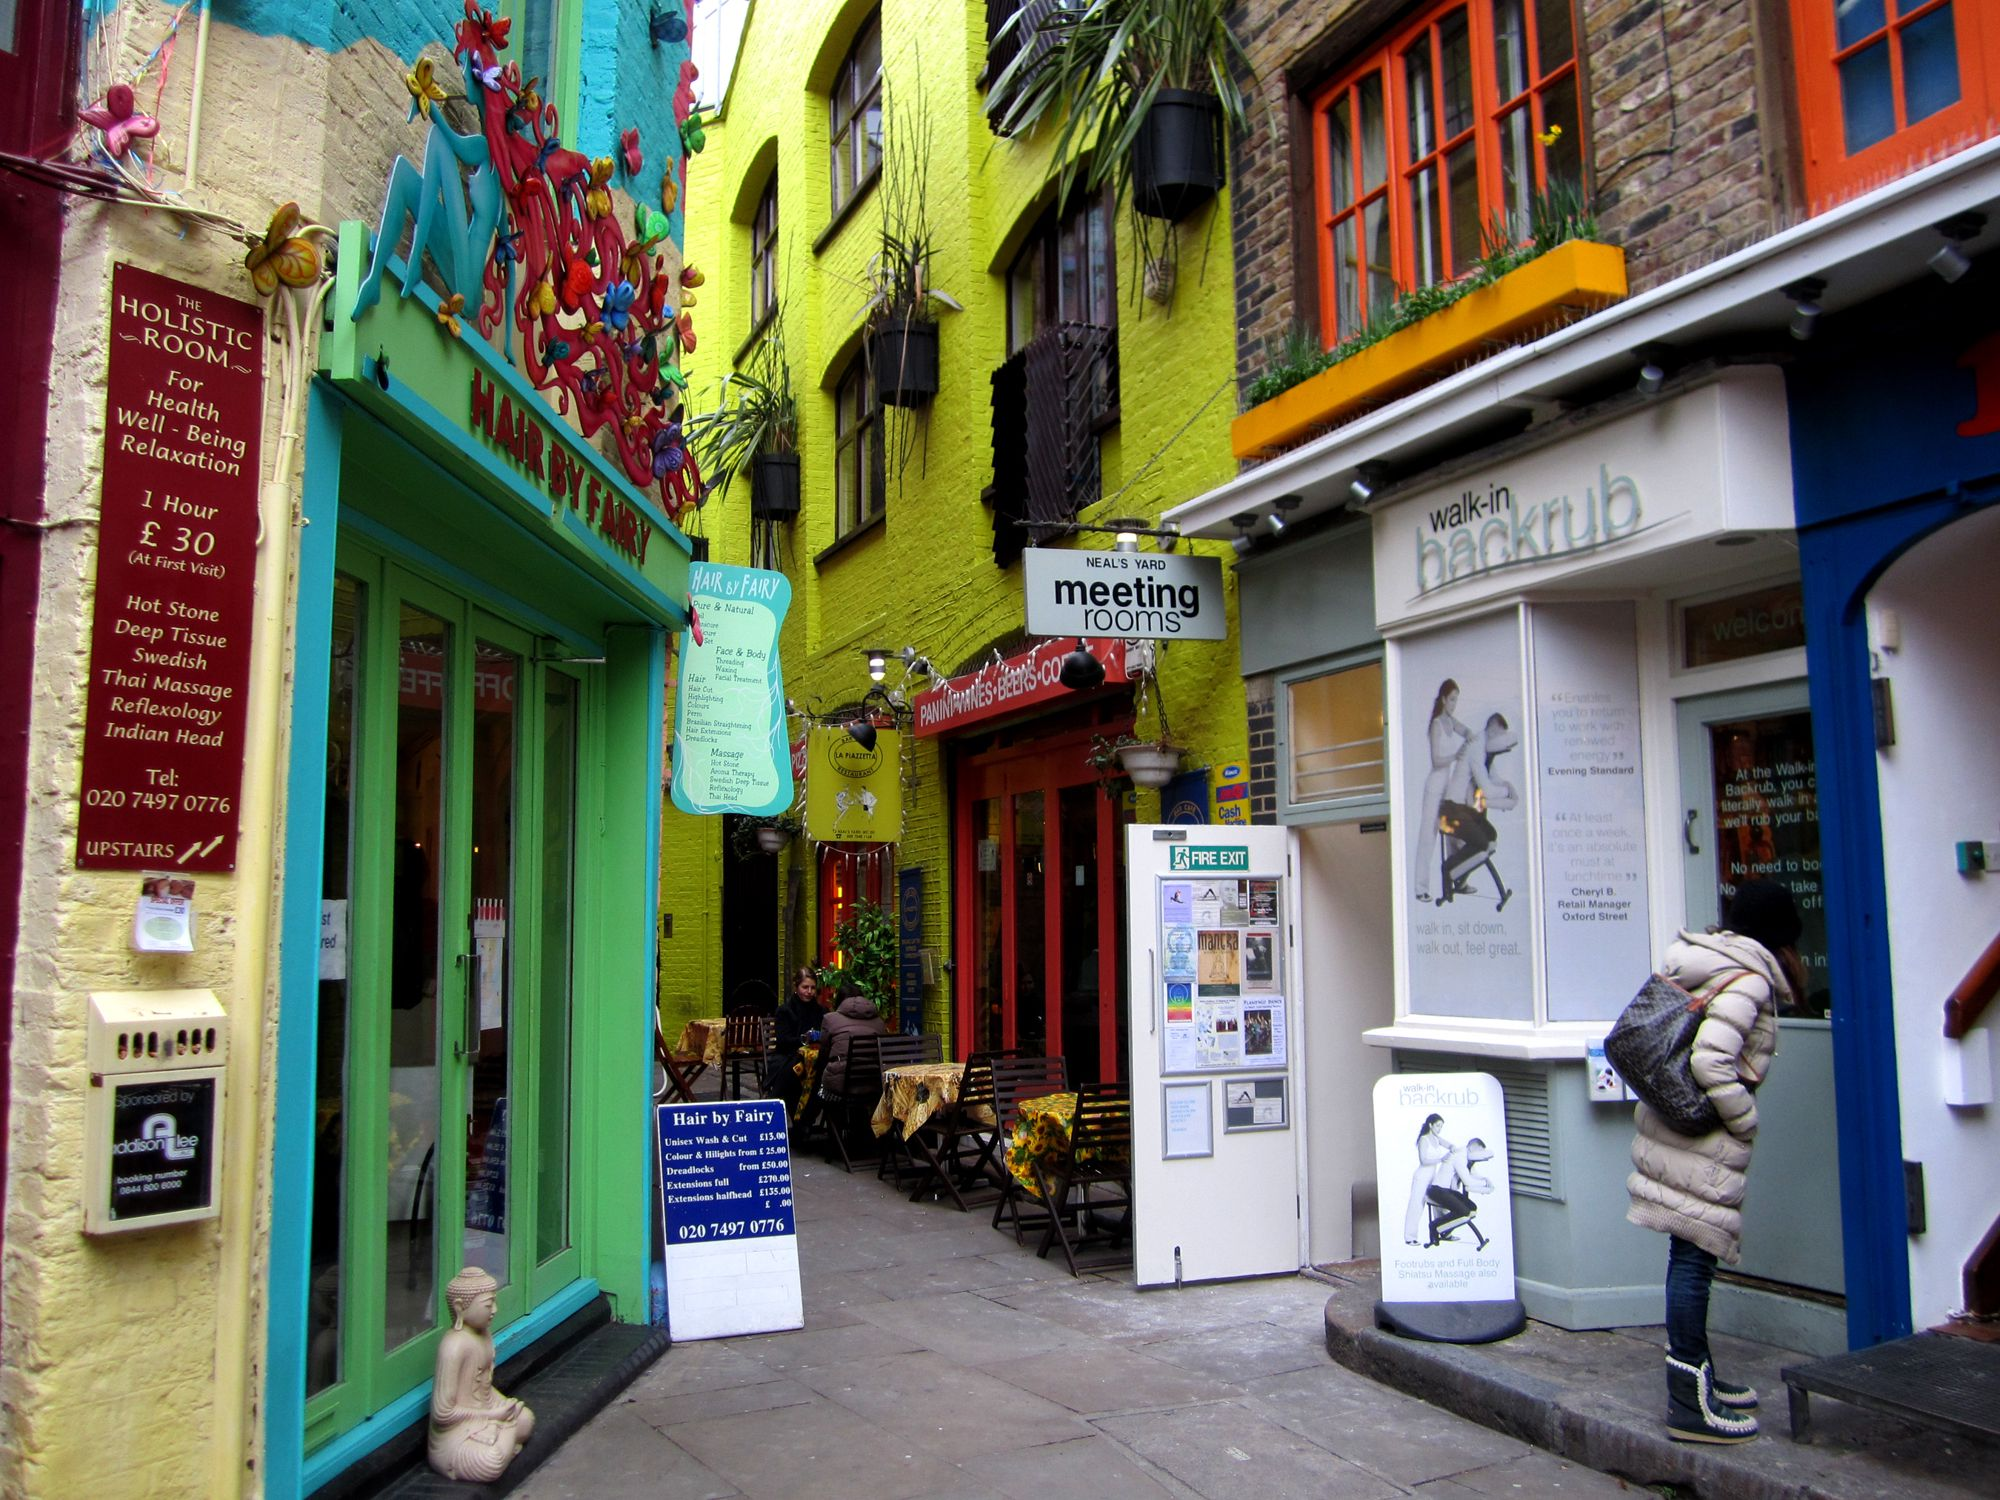 The Cool Places guide to Covent Garden, central London's liveliest and most visited neighbourhood